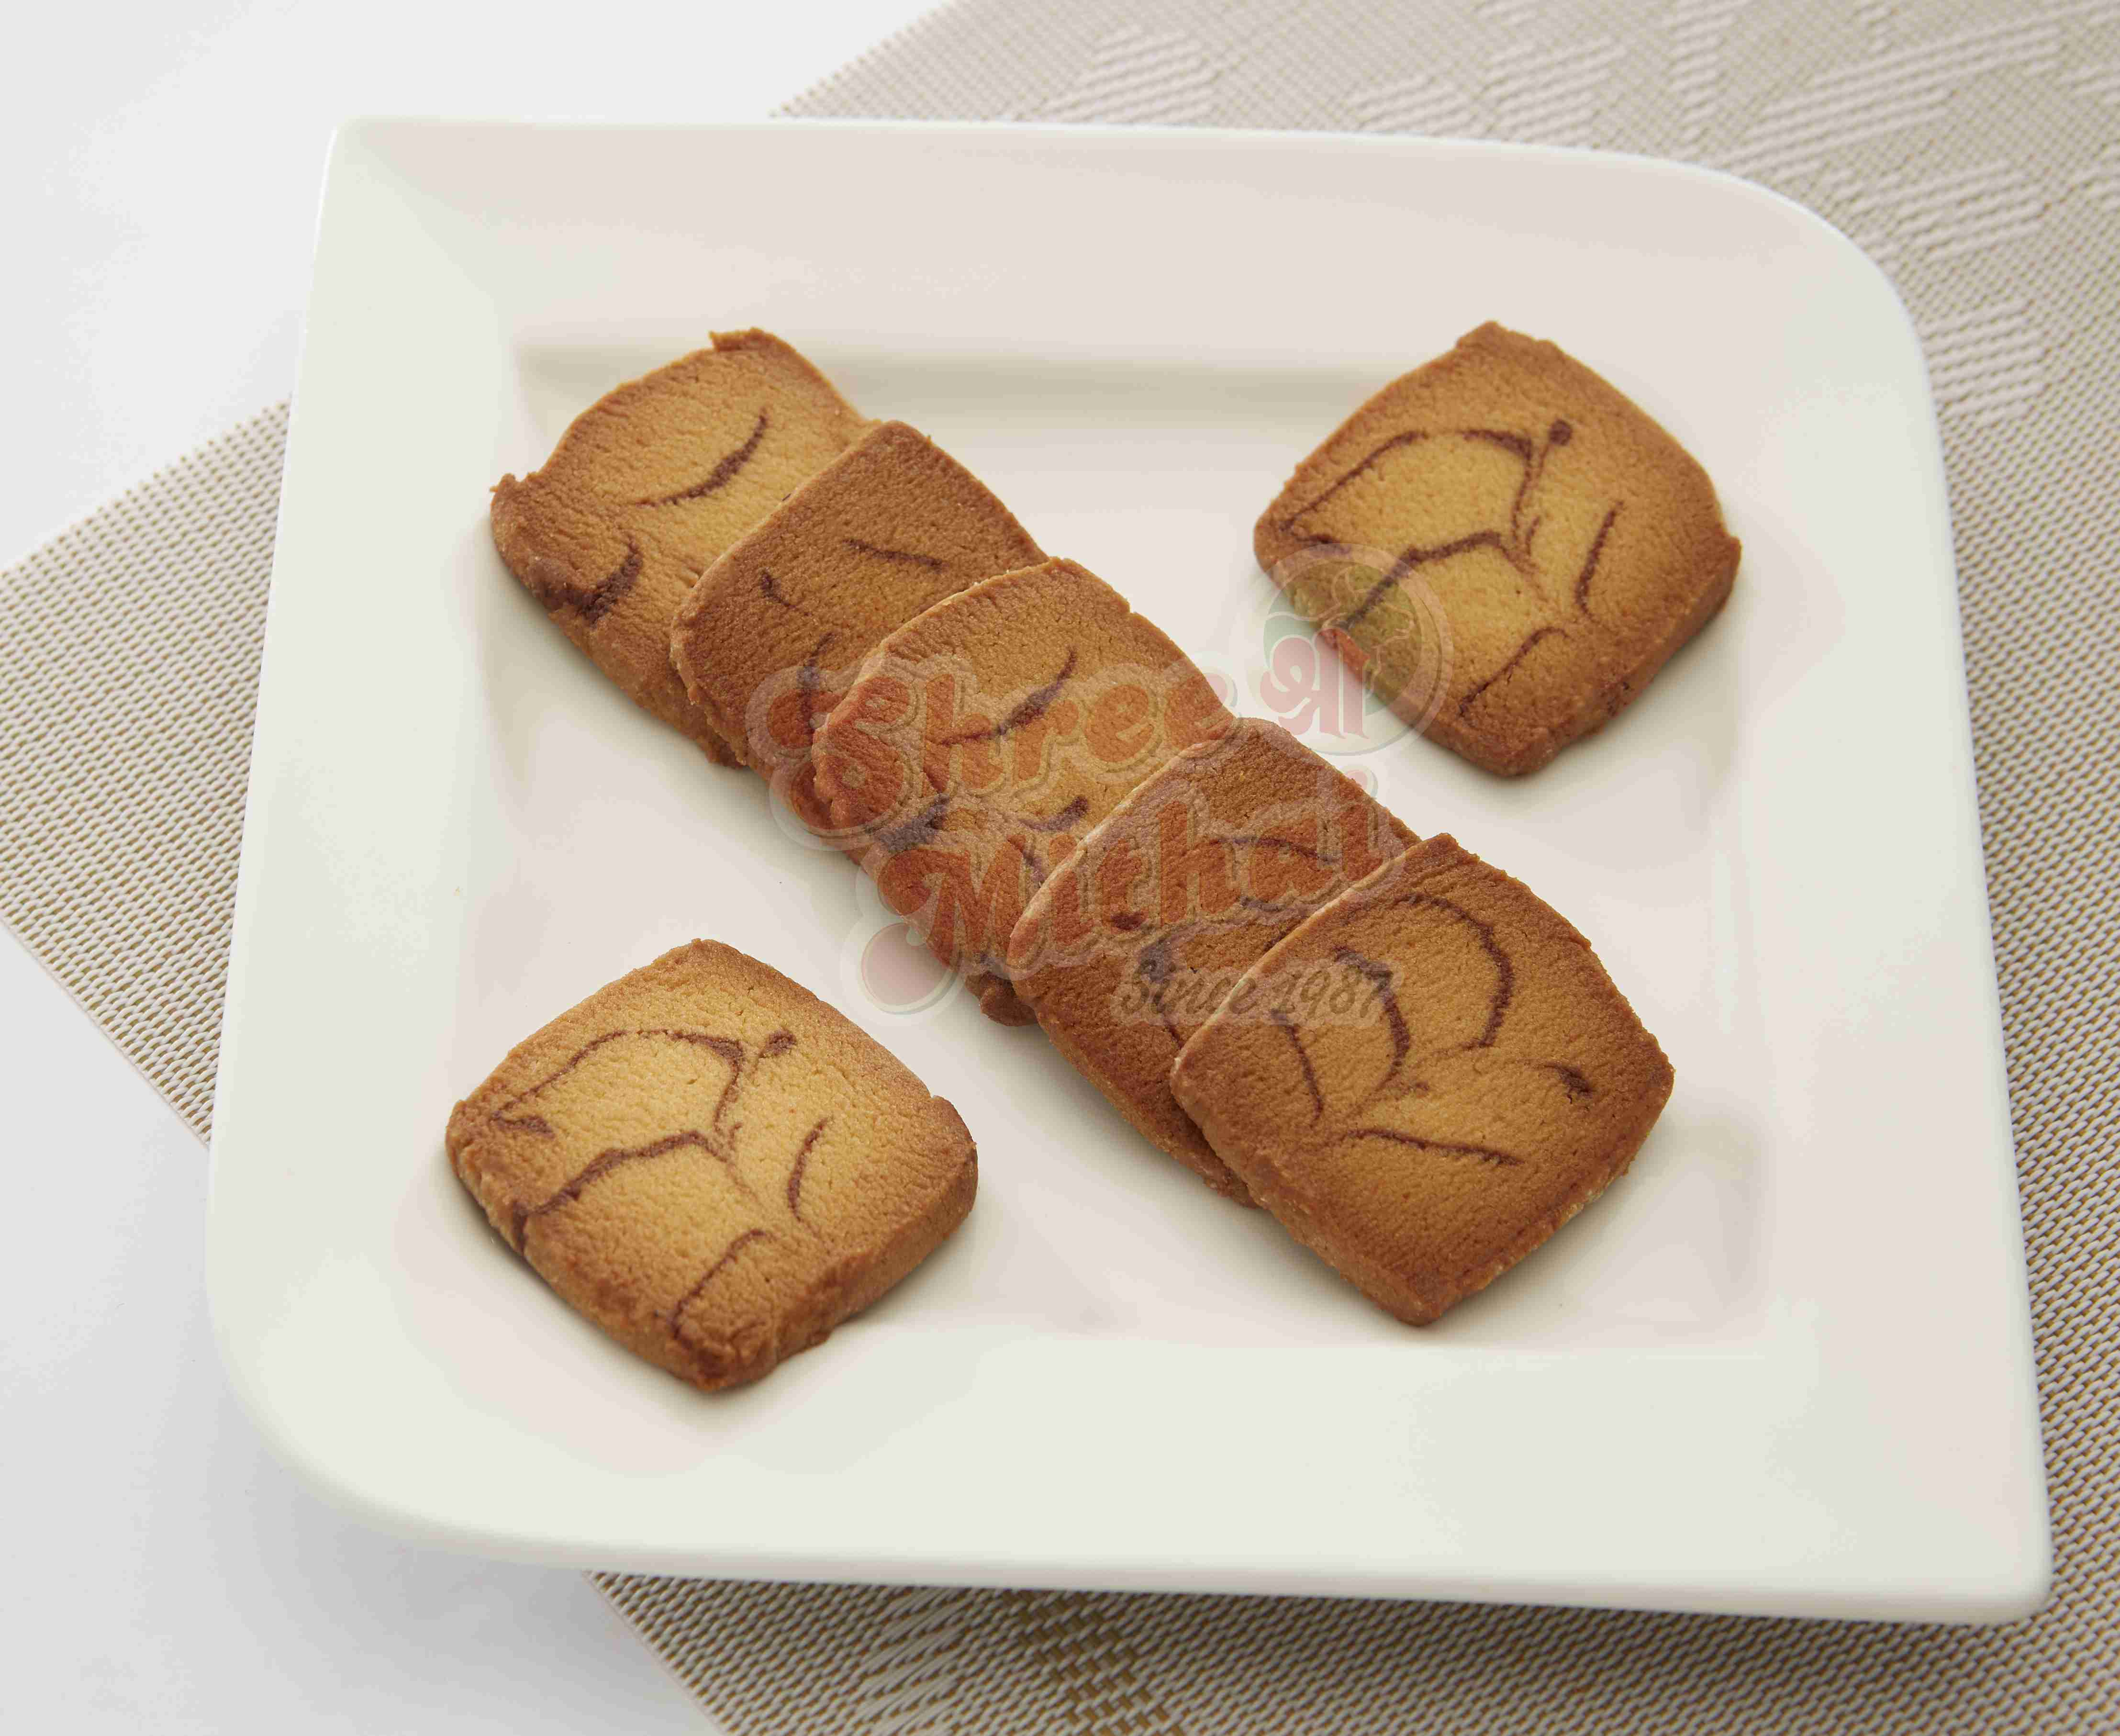 Marble Biscuit (200 Gms)